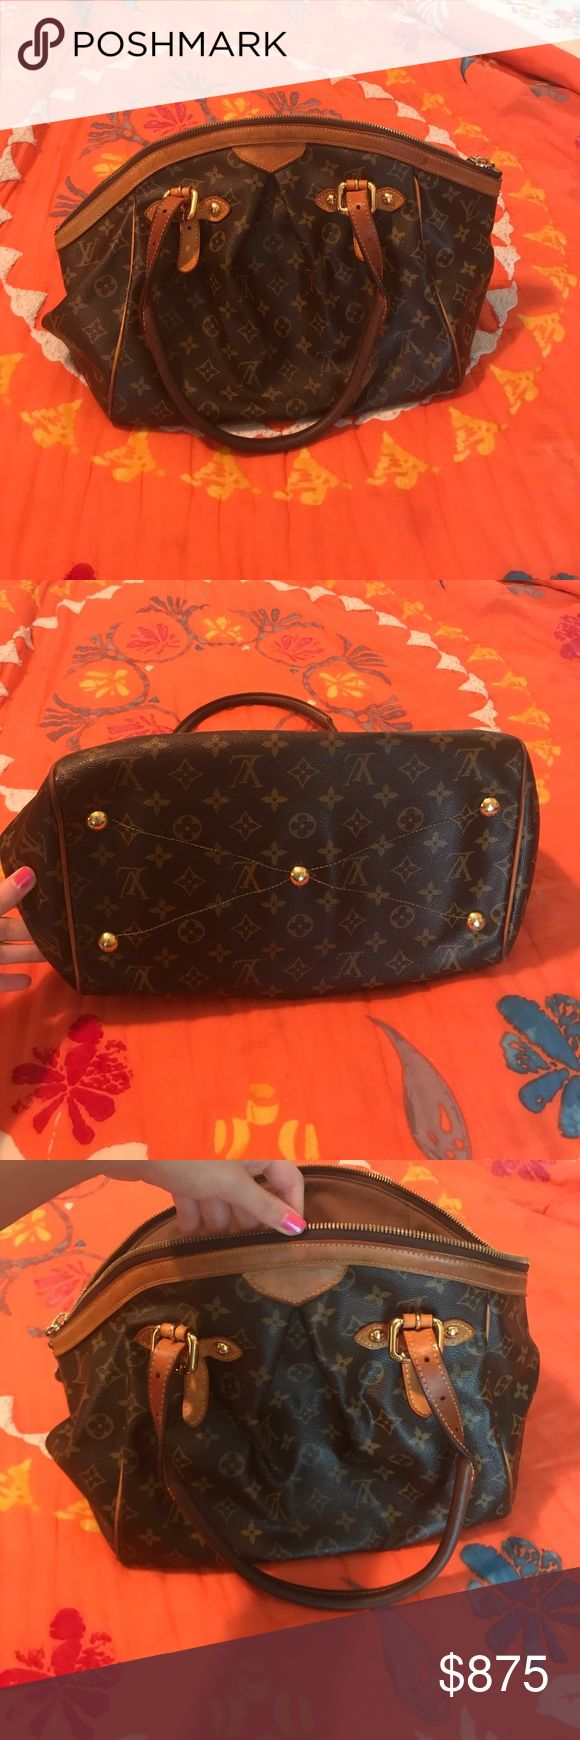 Louis Vuitton purse 100% Real Louis Vuitton purse! In great condition with some sun damage to the straps and leather lining Louis Vuitton Bags Totes